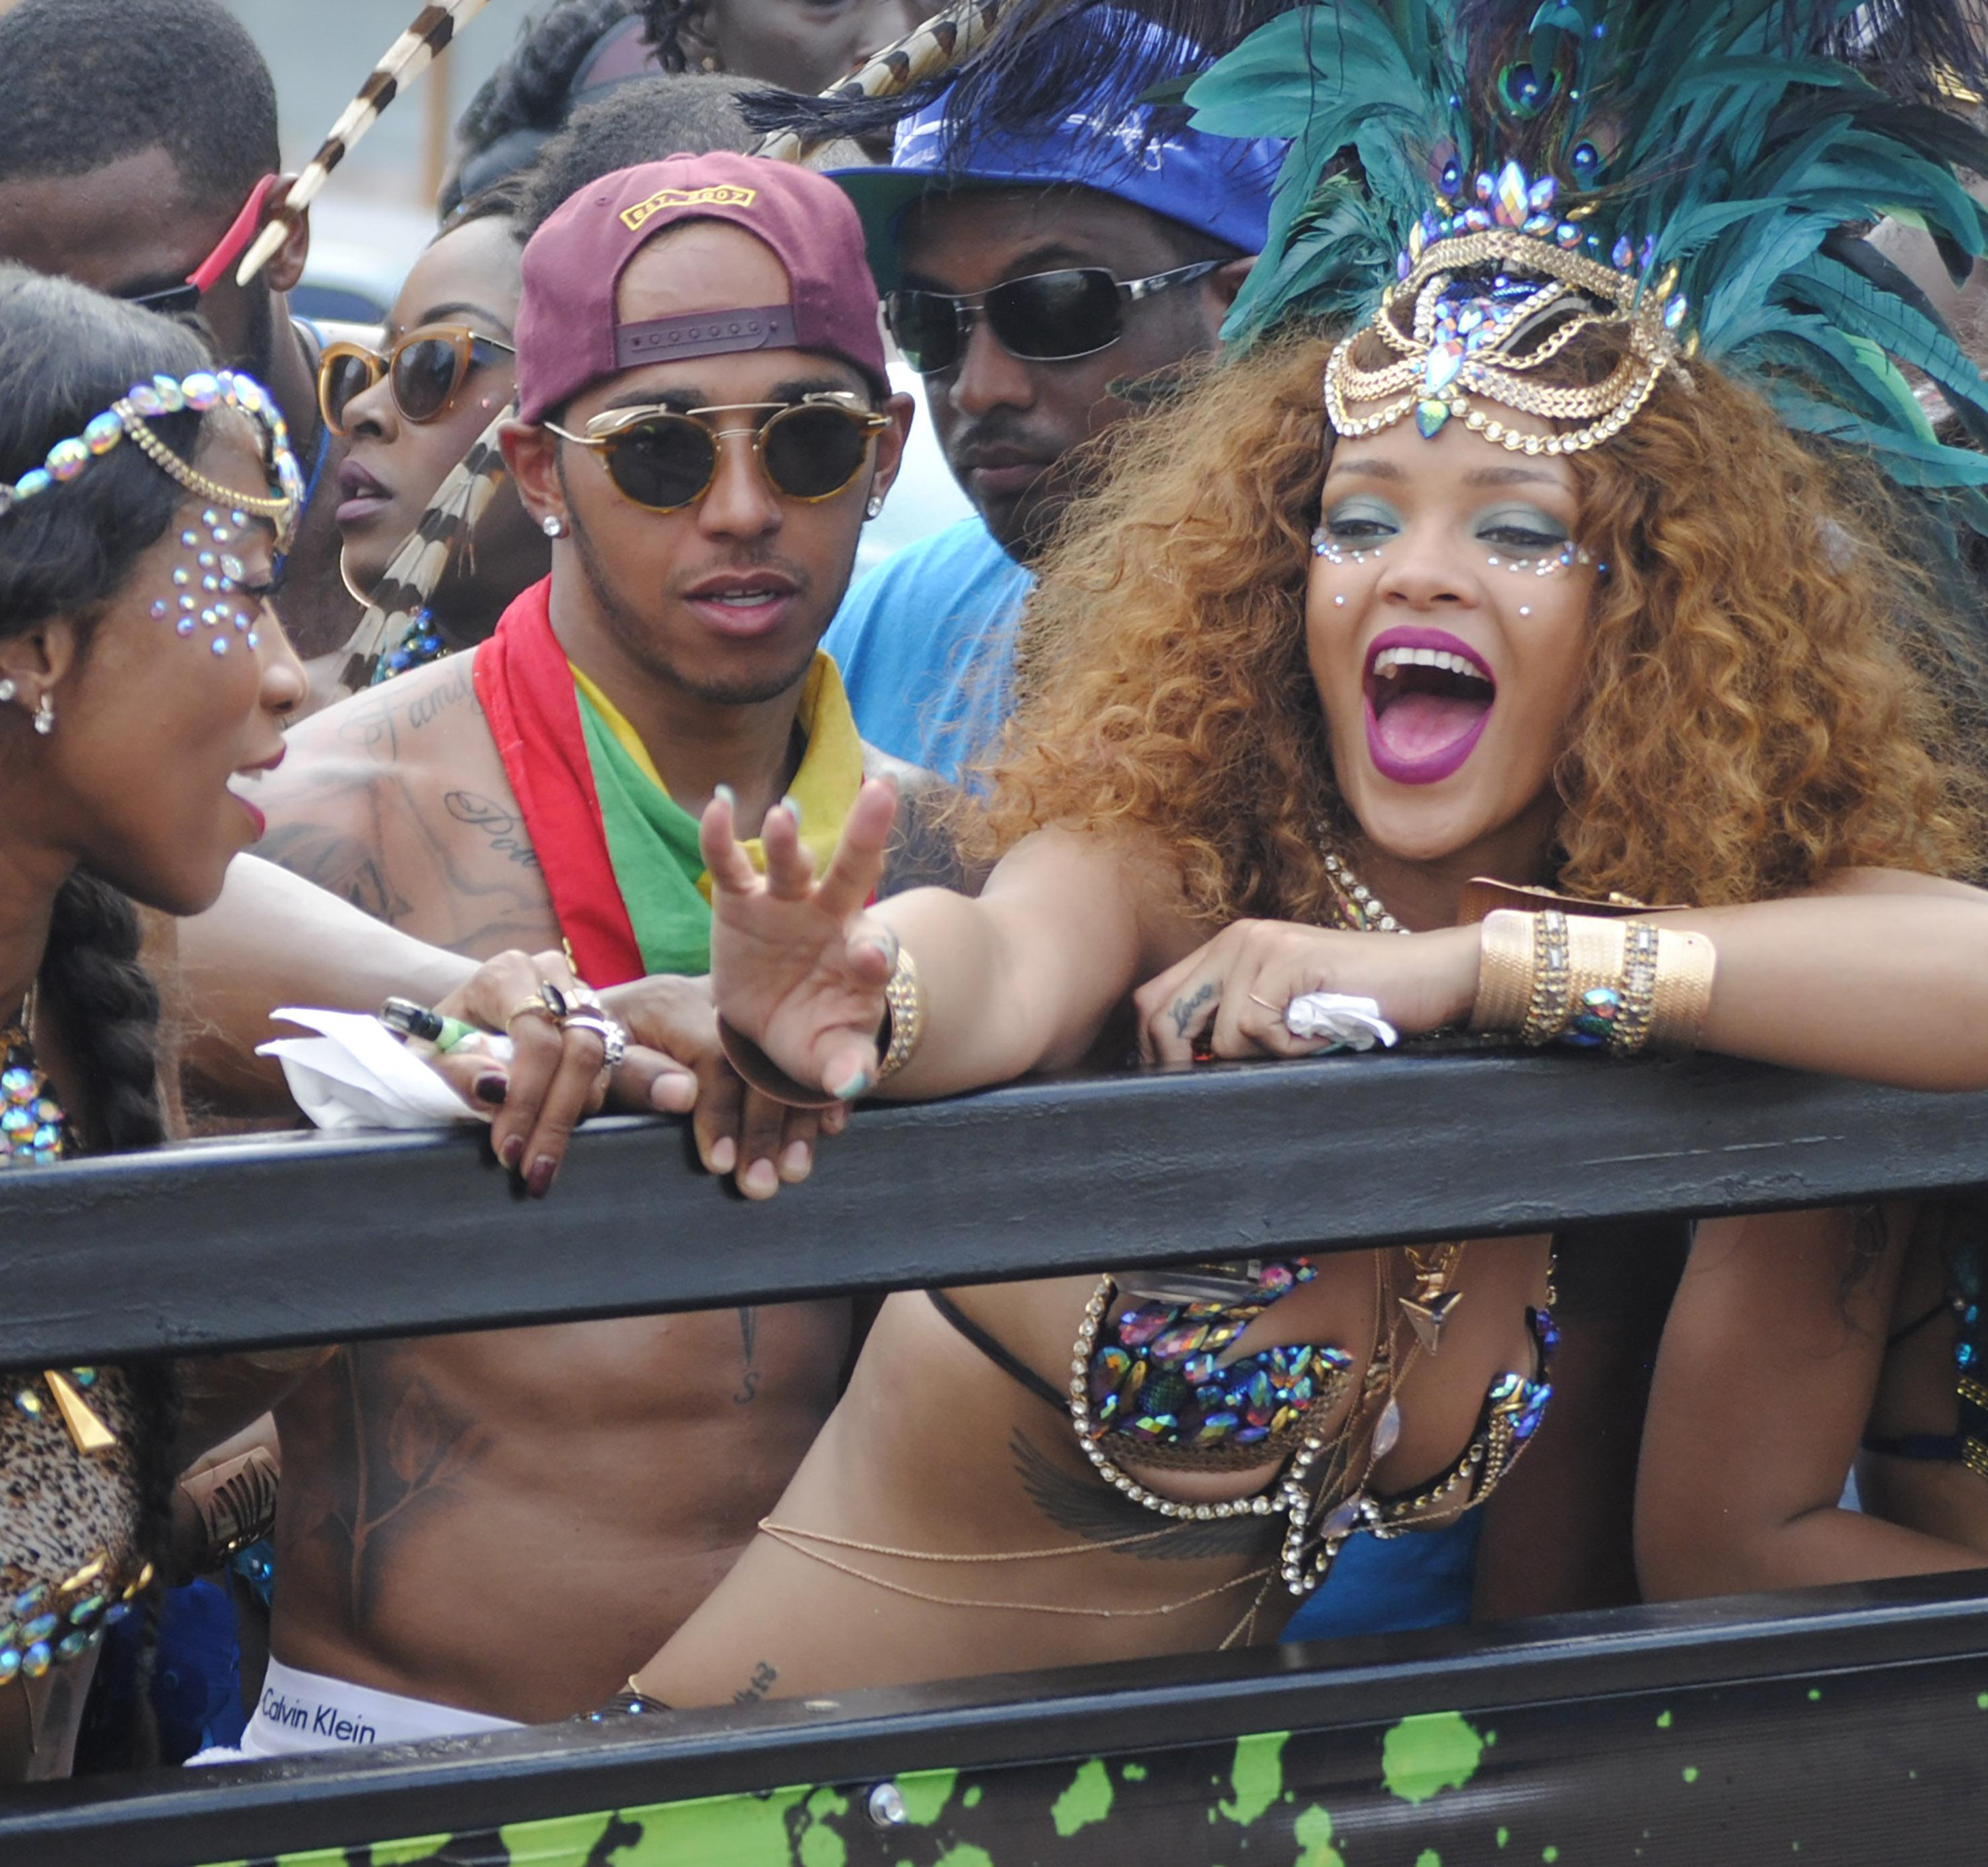 Lewis loves the high life, and Rihanna shared his love of diamonds